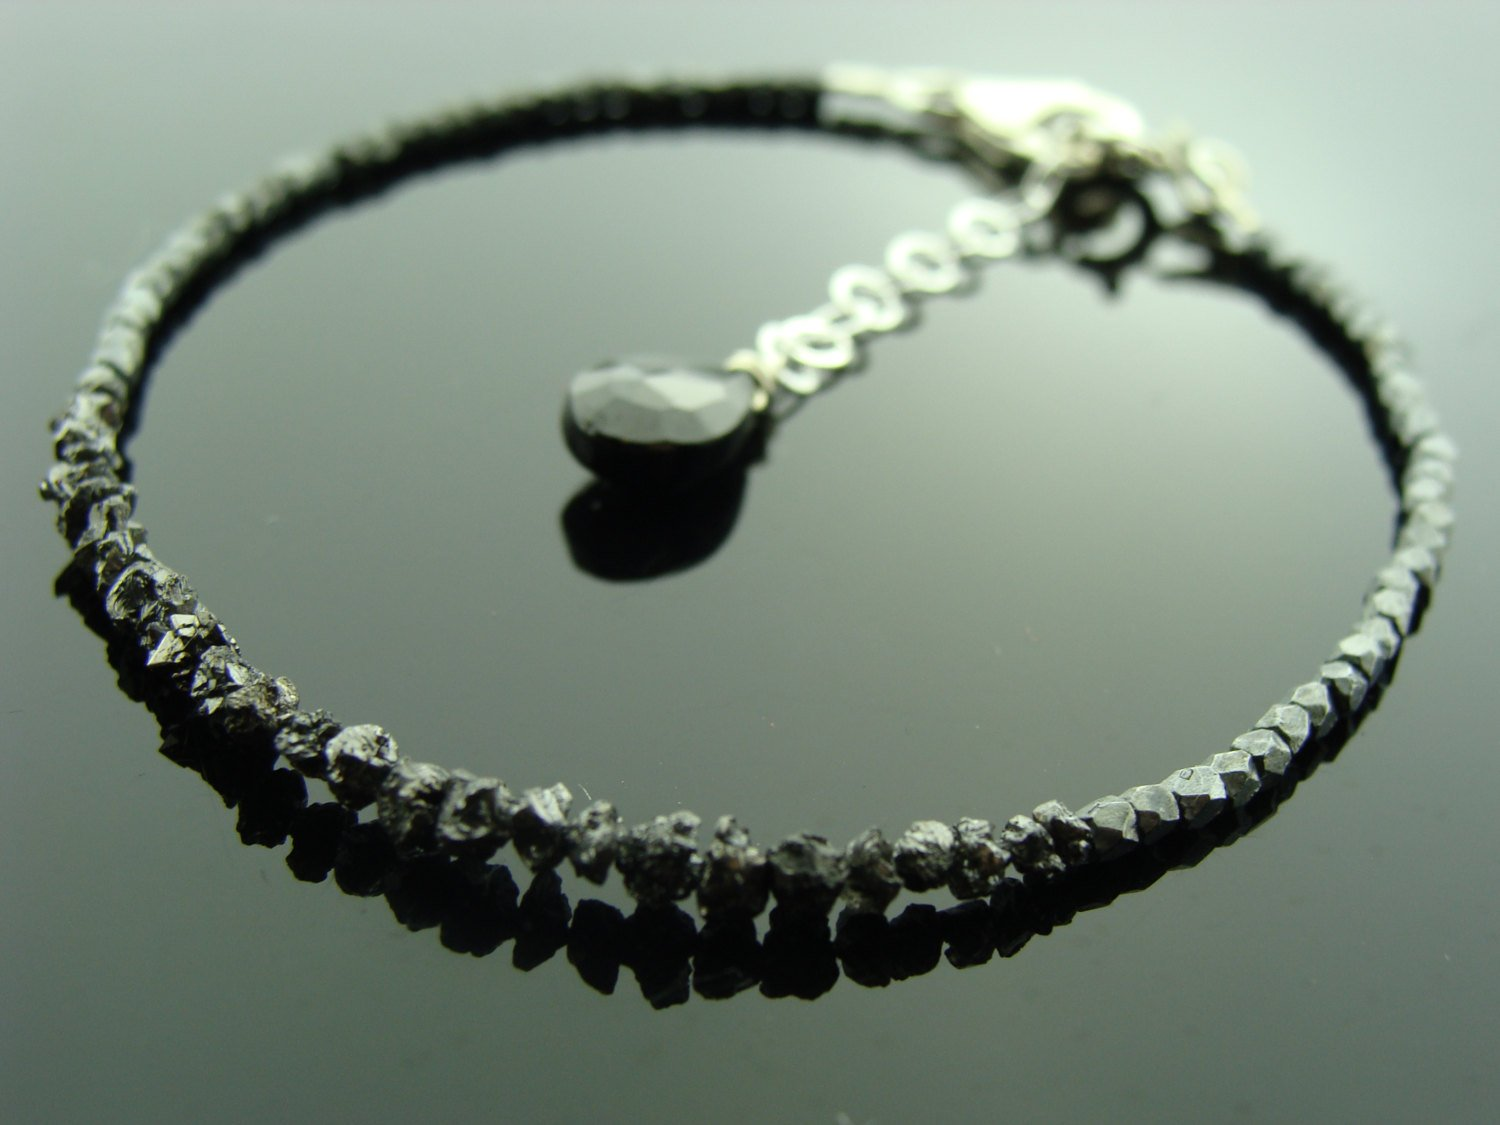 Genuine Black Raw Rough Uncut Diamond and Black Sterling Silver Bracelet